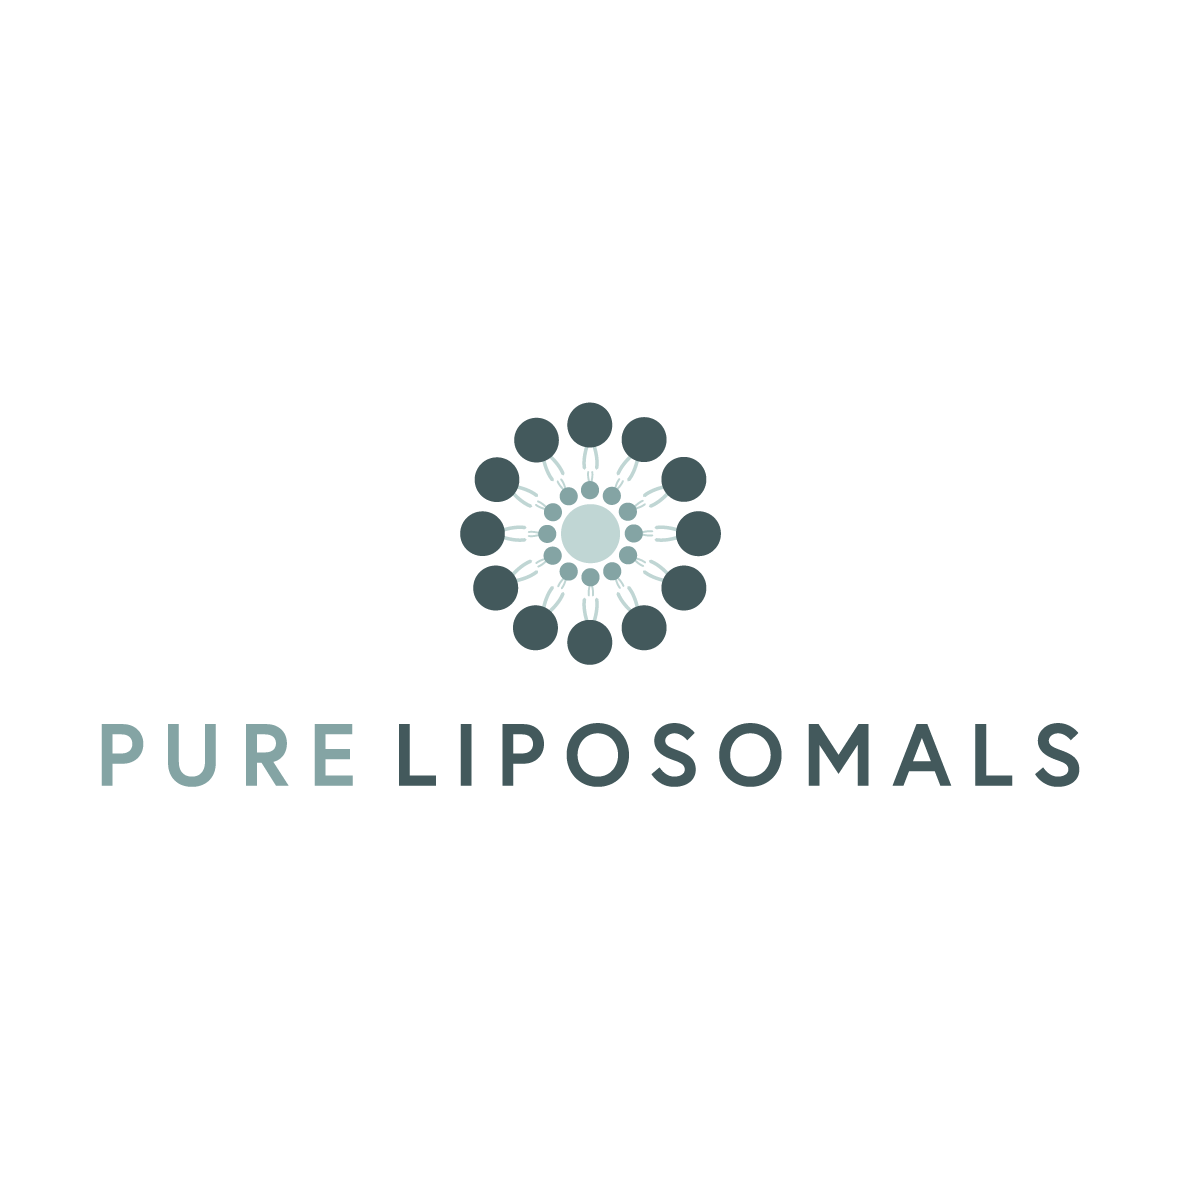 The logo was intended to showcase the Liposome in a very clear and visually communicative fashion. - The packaging mockups featured here can be found at Graphic Google and Graphics Fuel sites.